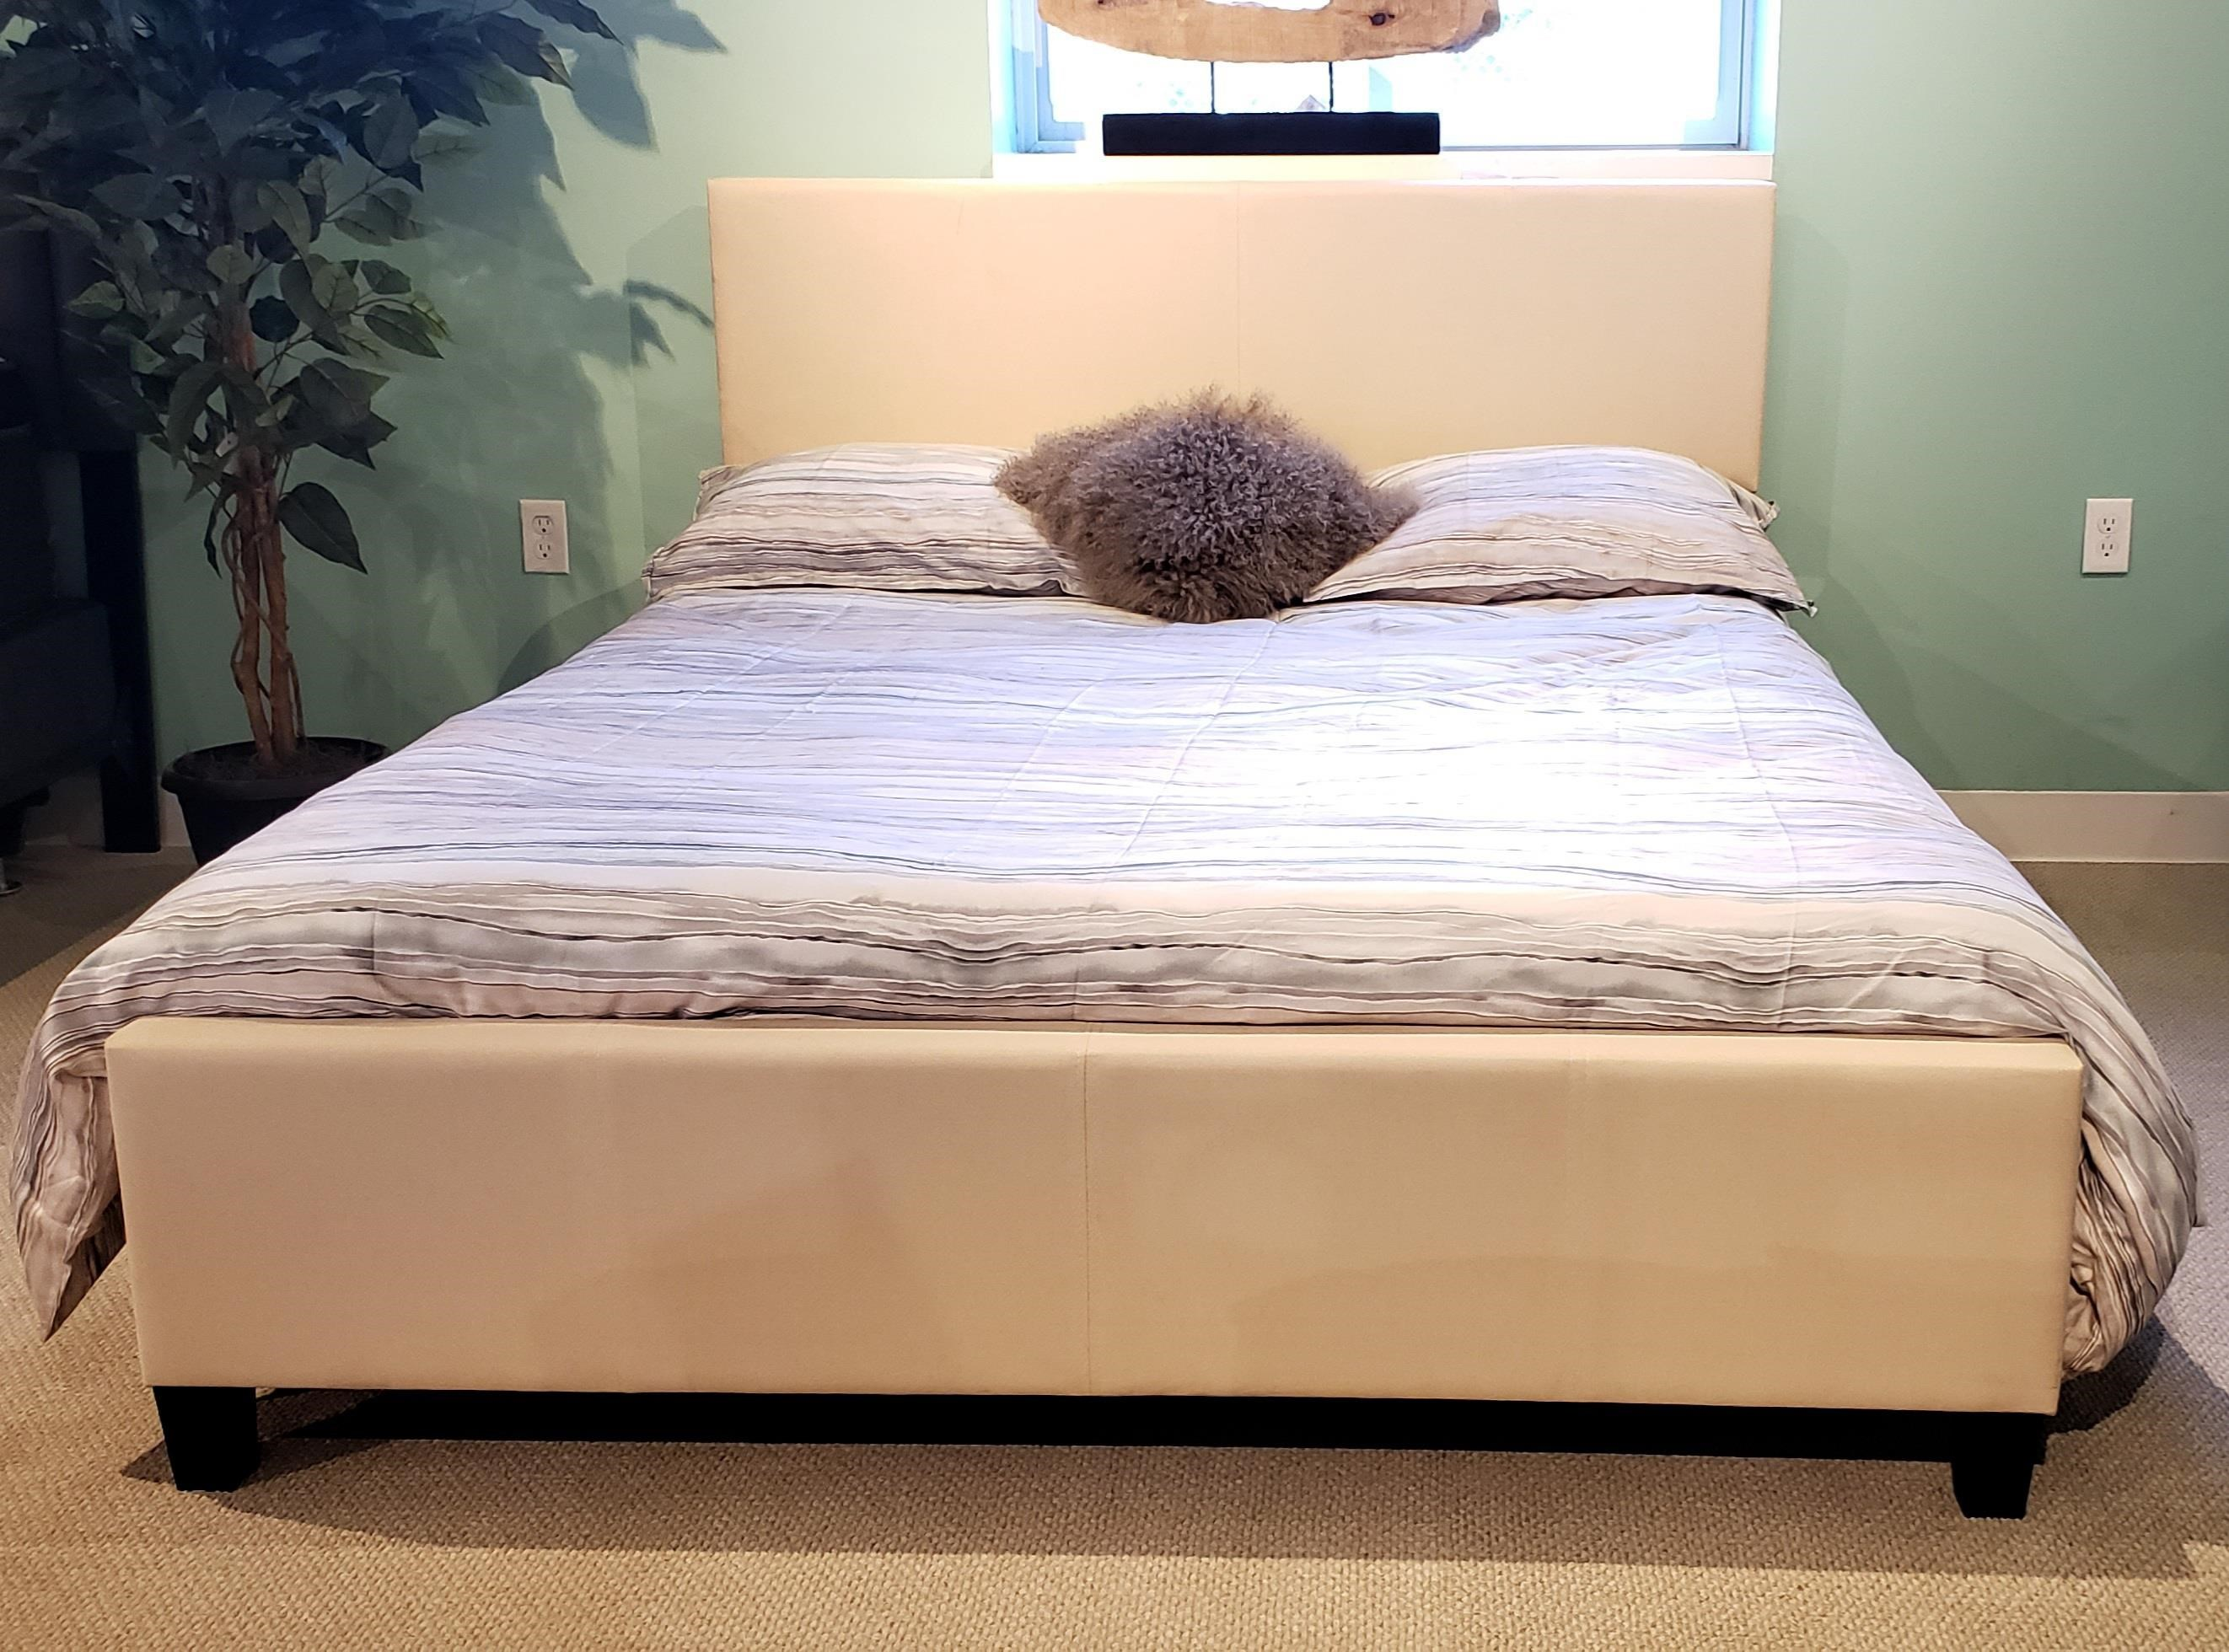 B690 - Ready to Assemble Upholstered Bed - Beige at Bennett's Furniture and Mattresses